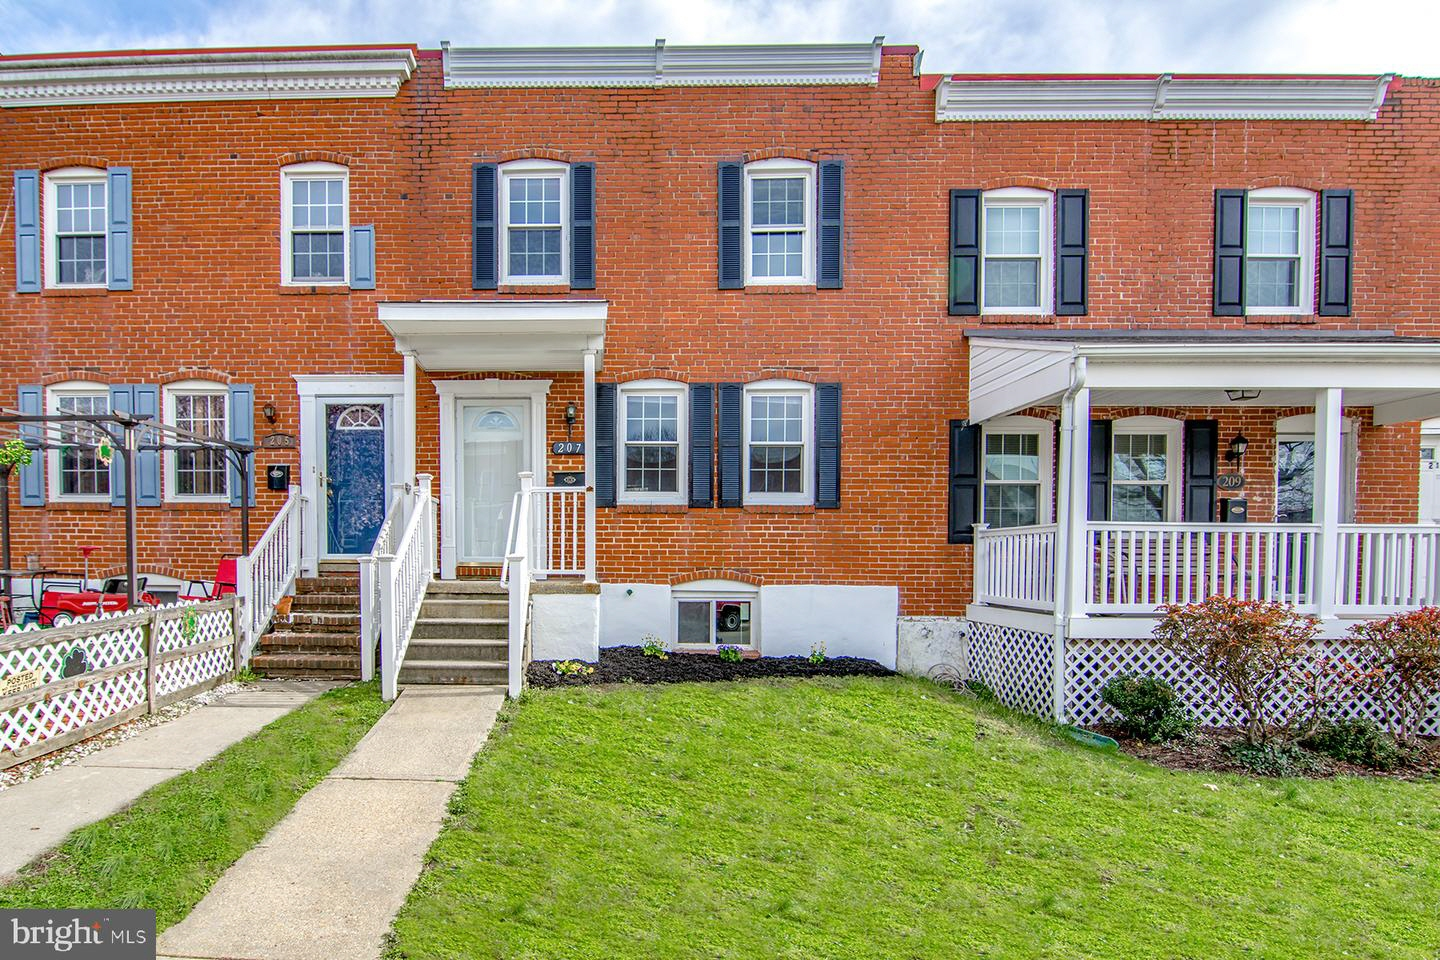 207 Southerly Road, Baltimore, MD, 21225 United States